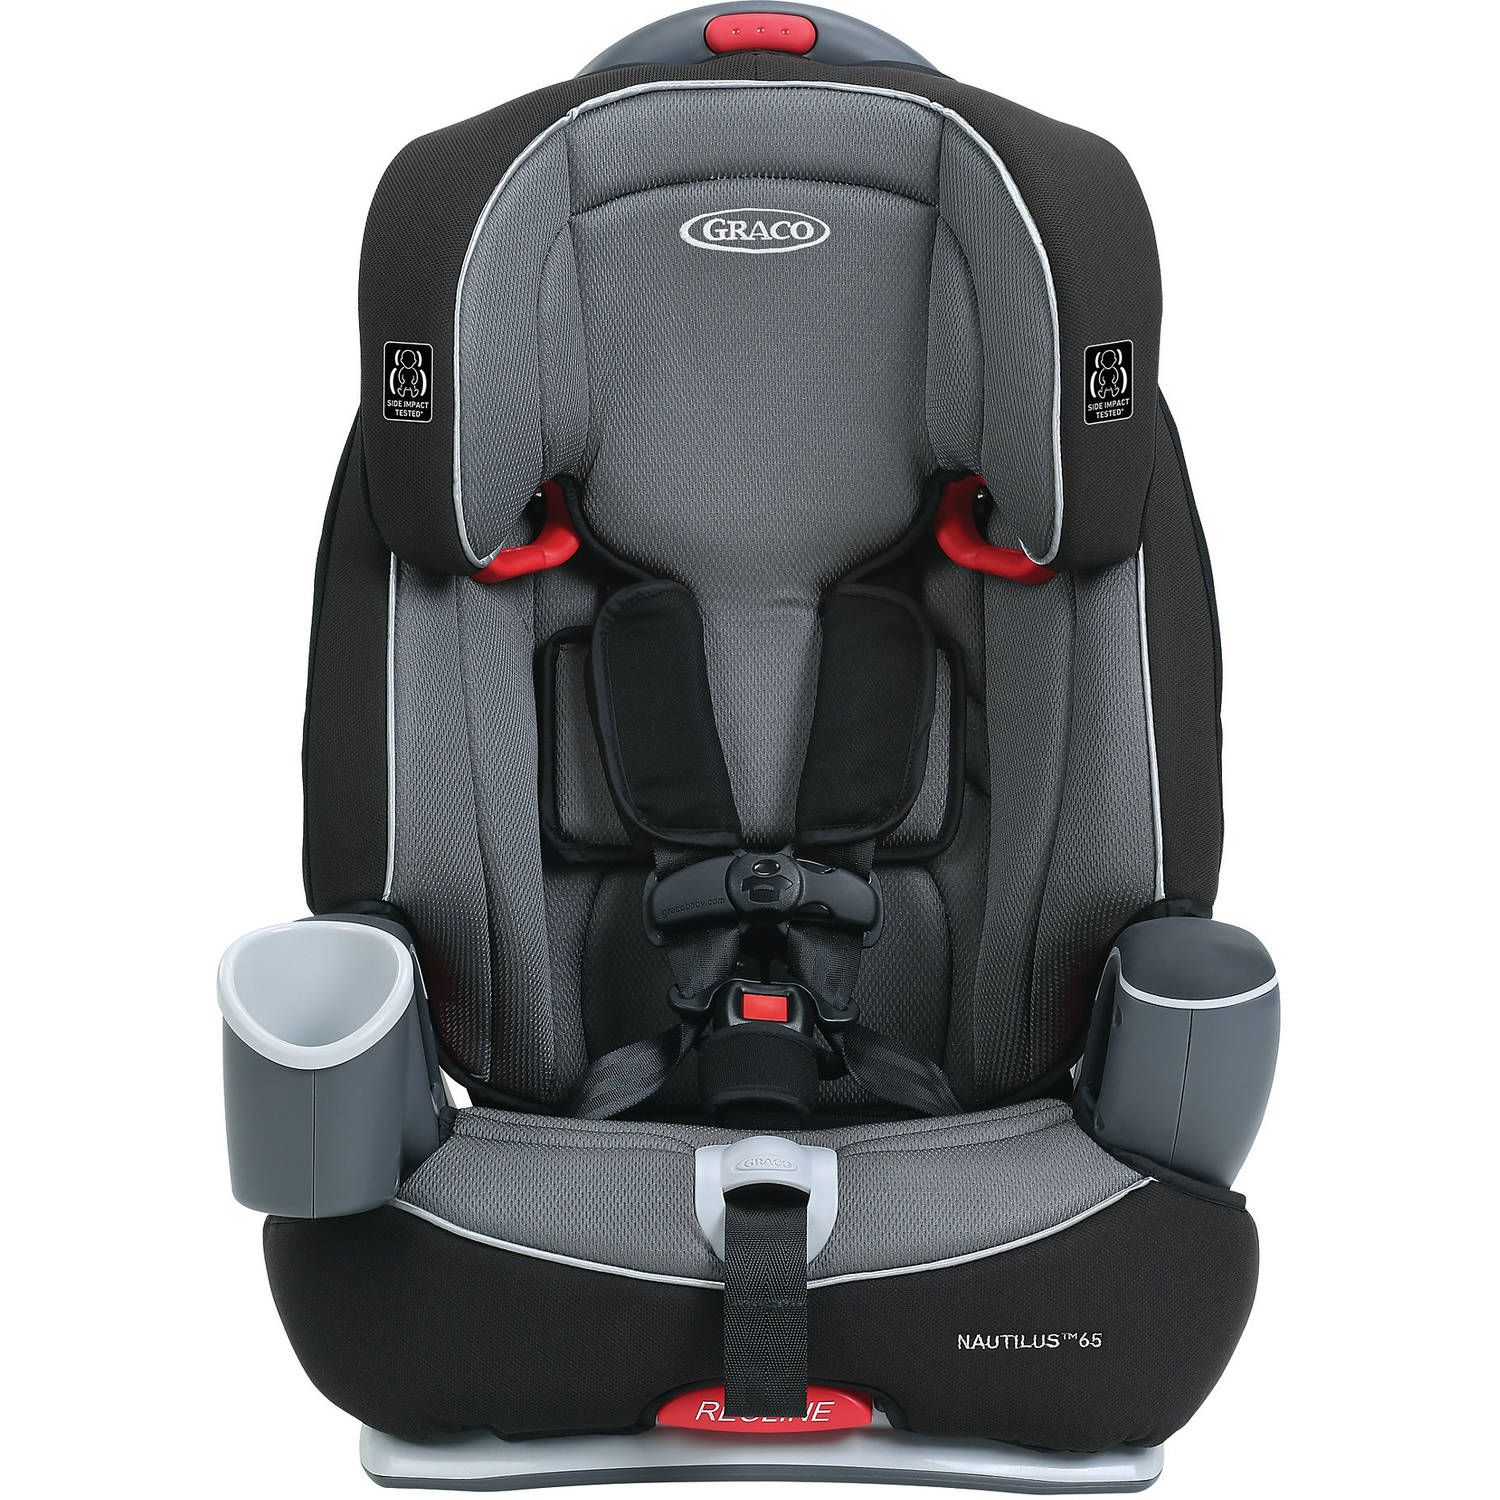 Graco nautilus 65 3in1 harness booster car seat landry